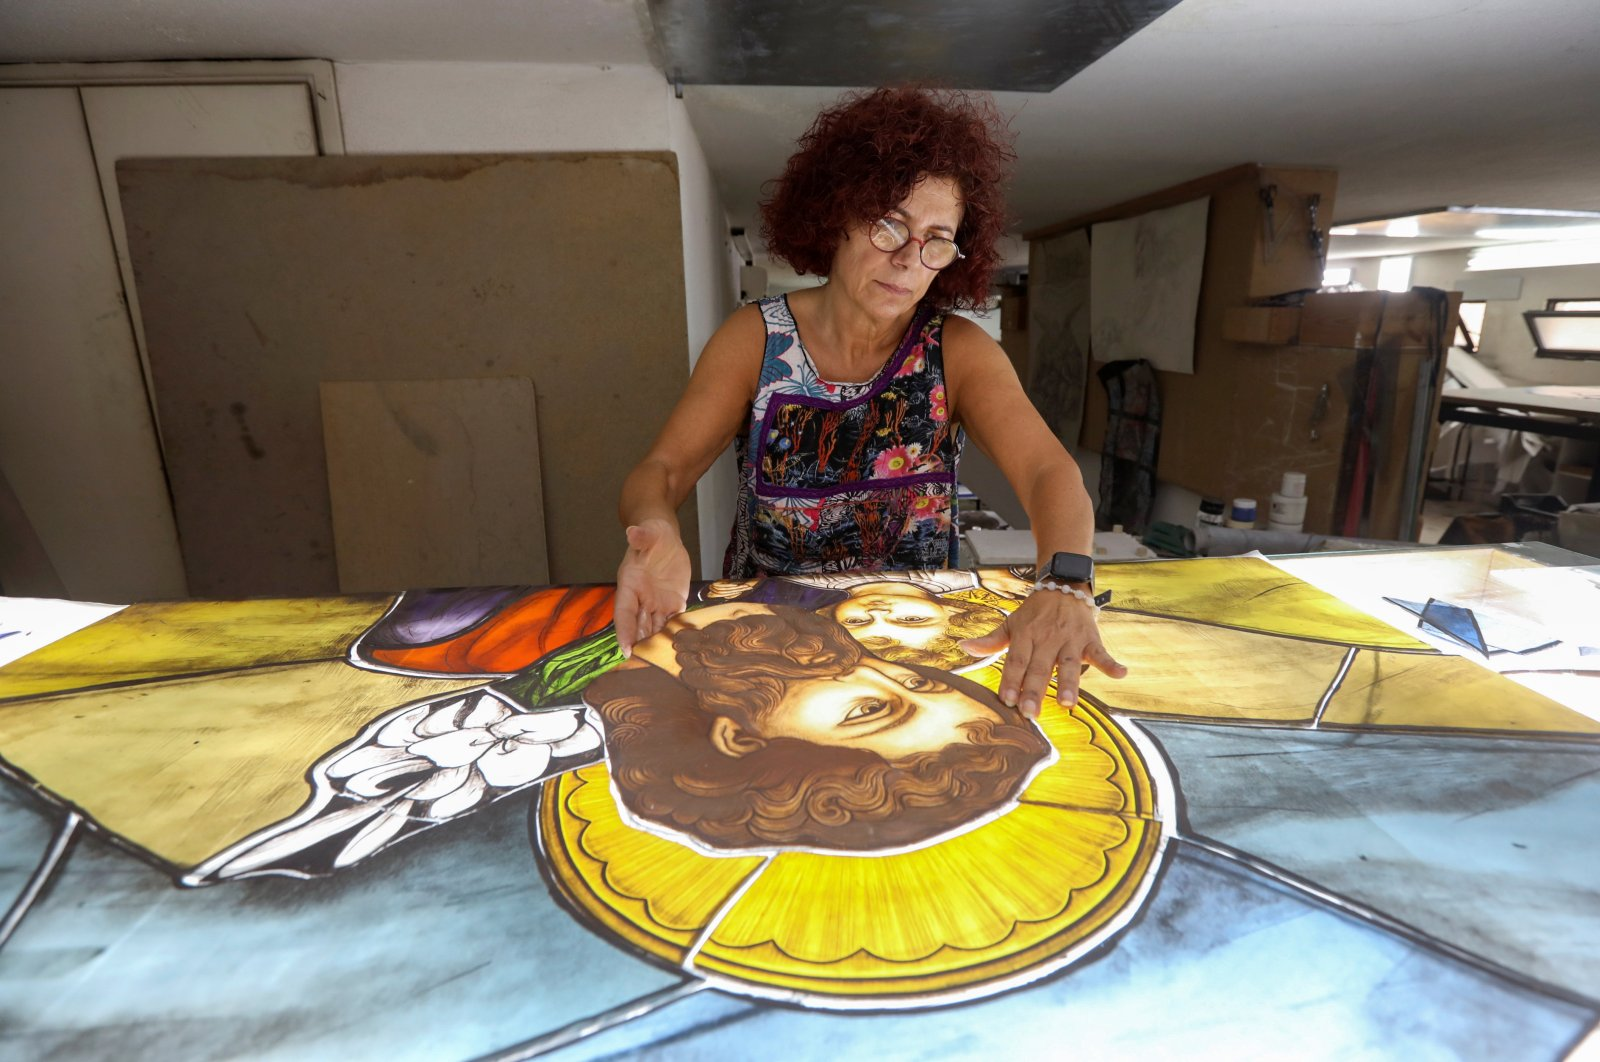 Stained glass maker Maya Husseini works inside her workshop in Hazmiyeh, Lebanon on Aug. 13, 2020. (Reuters Photo)